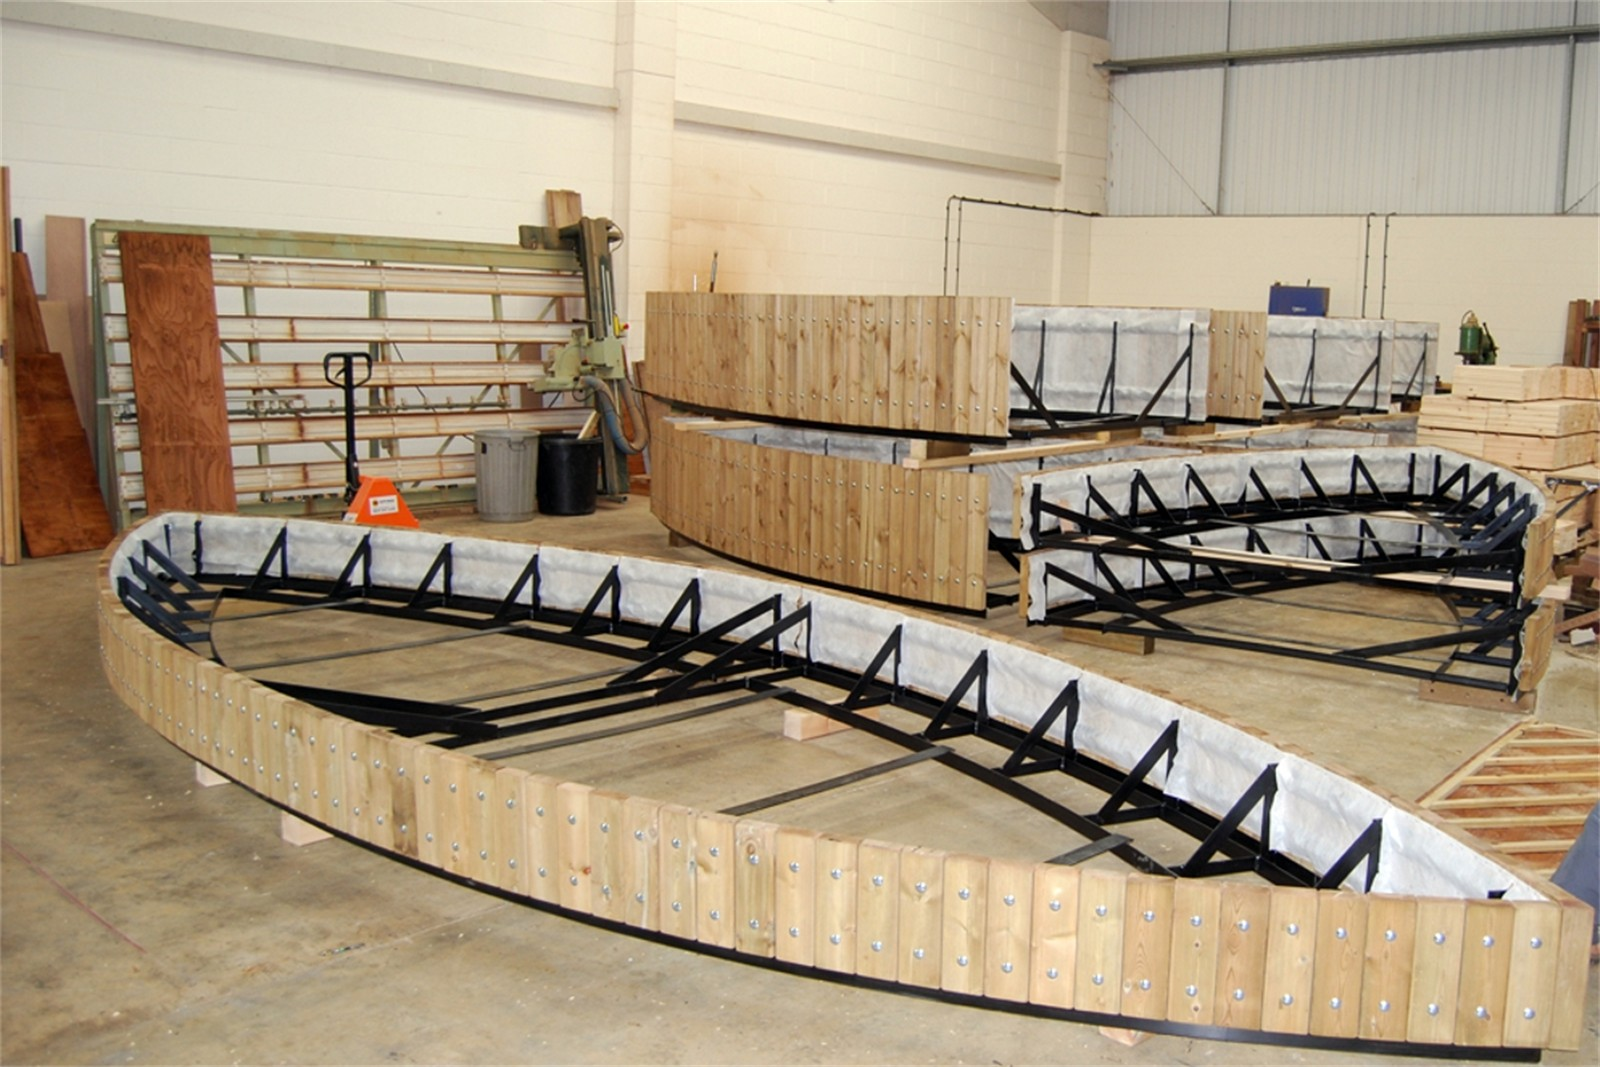 38psw11 - Swithland large roof garden planters in manufacture